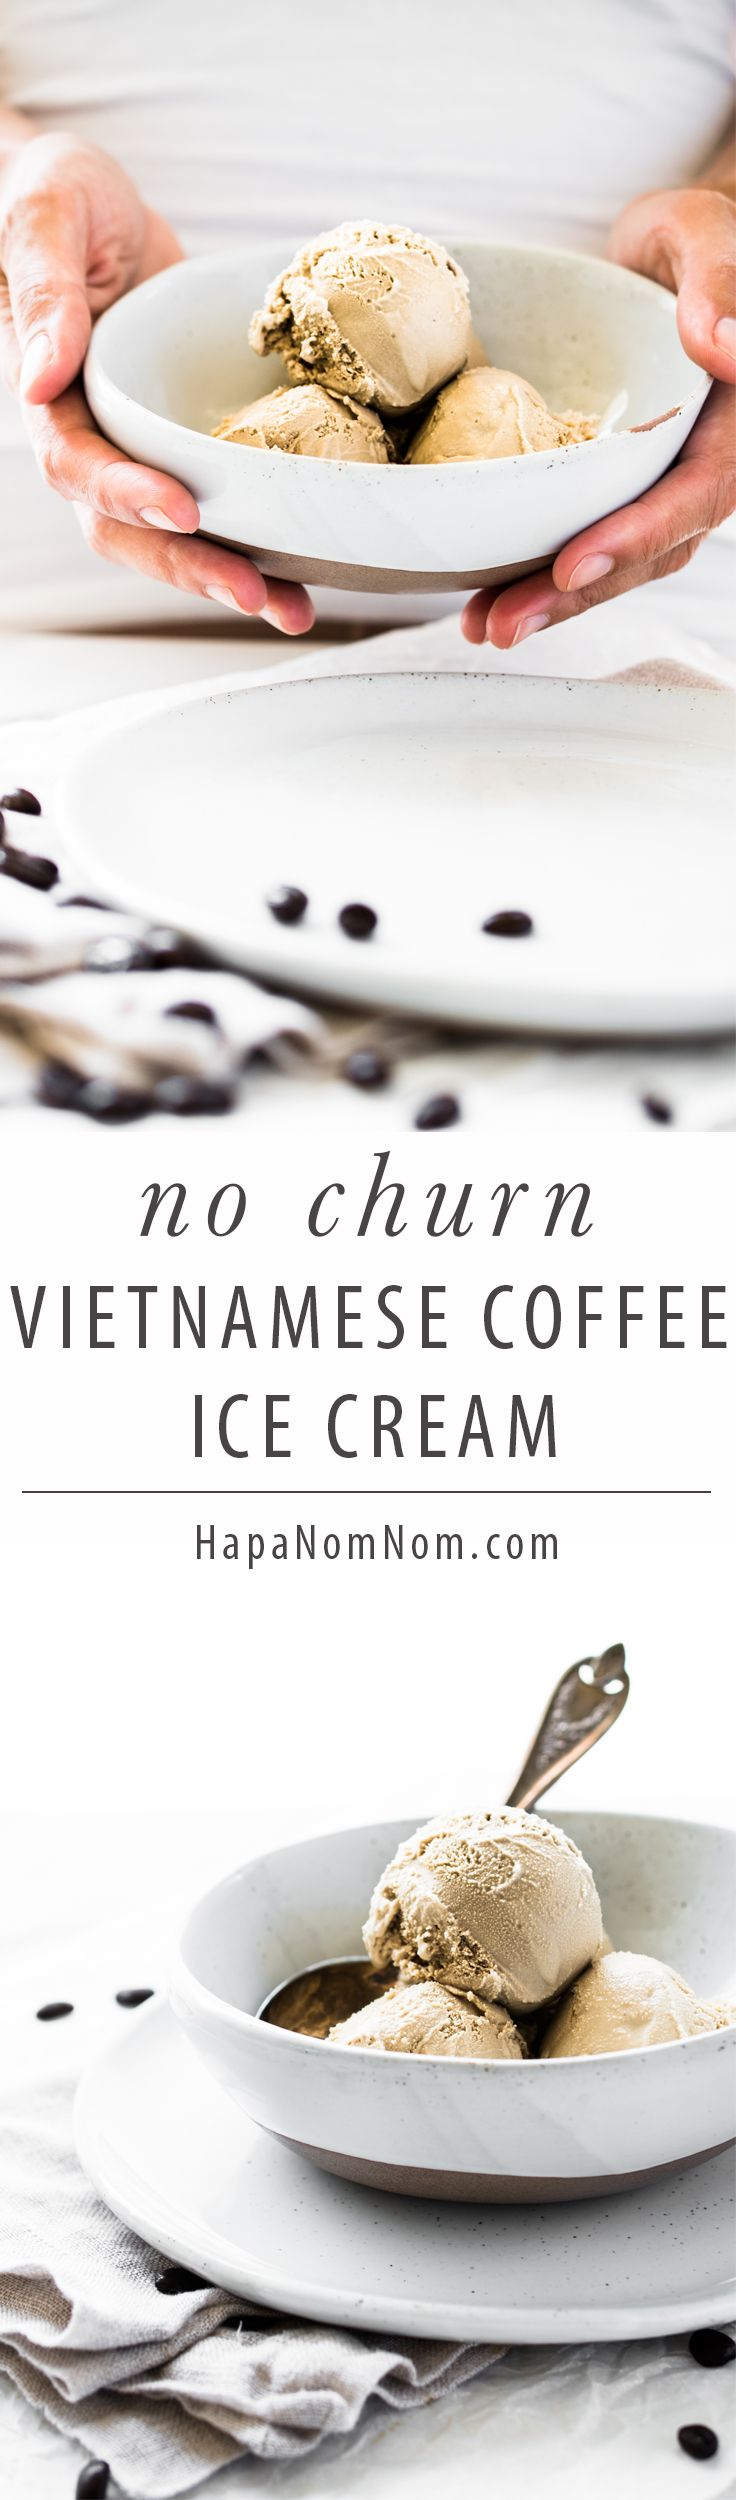 Vietnamese Iced Coffee is fantastic - hot day or otherwise! Now imagine that sweet and creamy beverage made into ice cream. What makes this even better?  NO expensive, counter --cluttering piece of equipment needed!